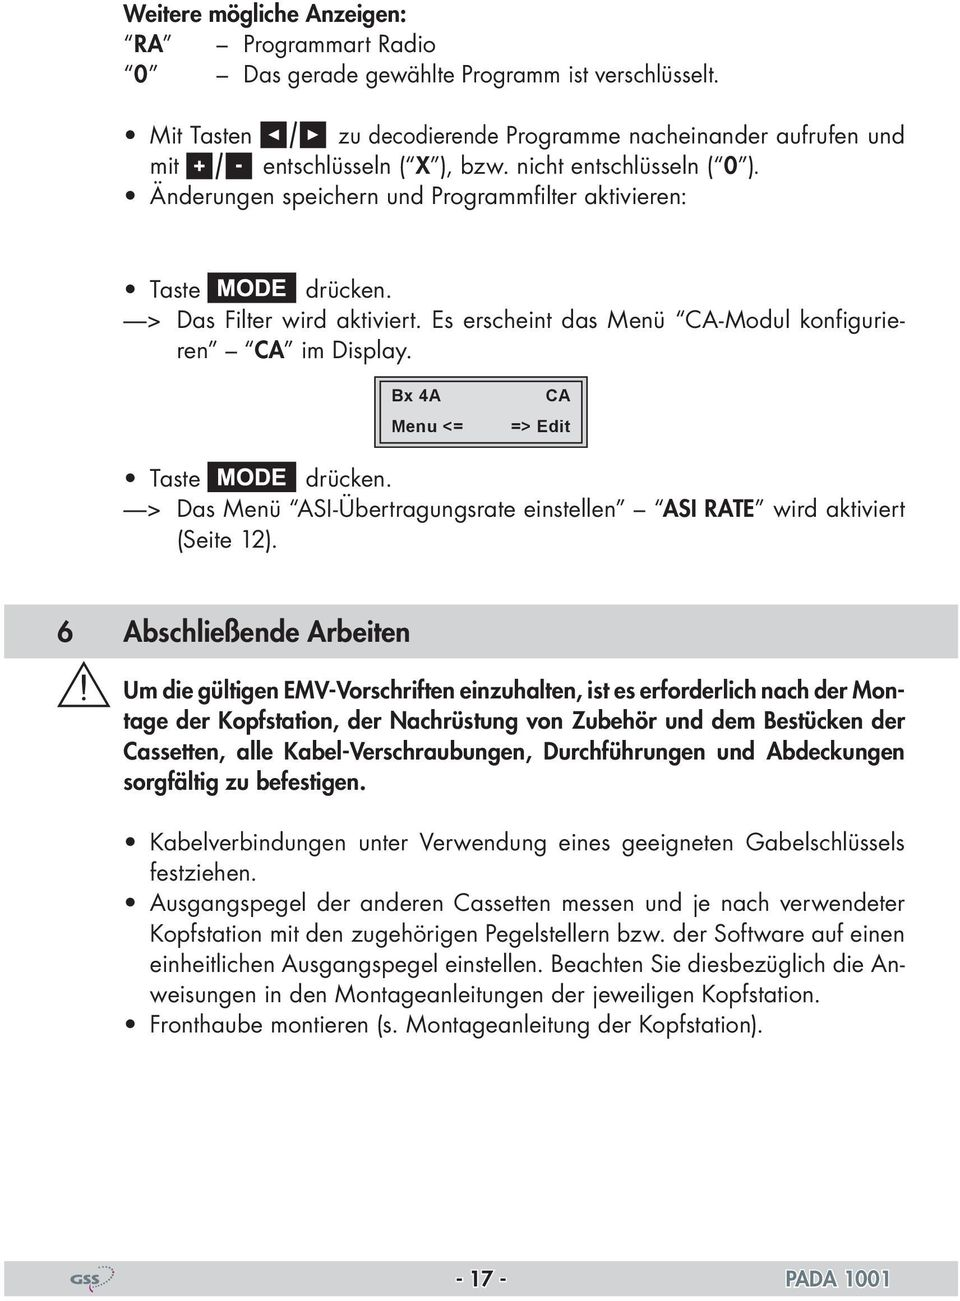 M *) Die angezeigte Information ist abhängig vom verwendeten -Modul. The information displayed is dependent on the module used. scramble Menu <= descramble => Edit scramble / descramble drücken.